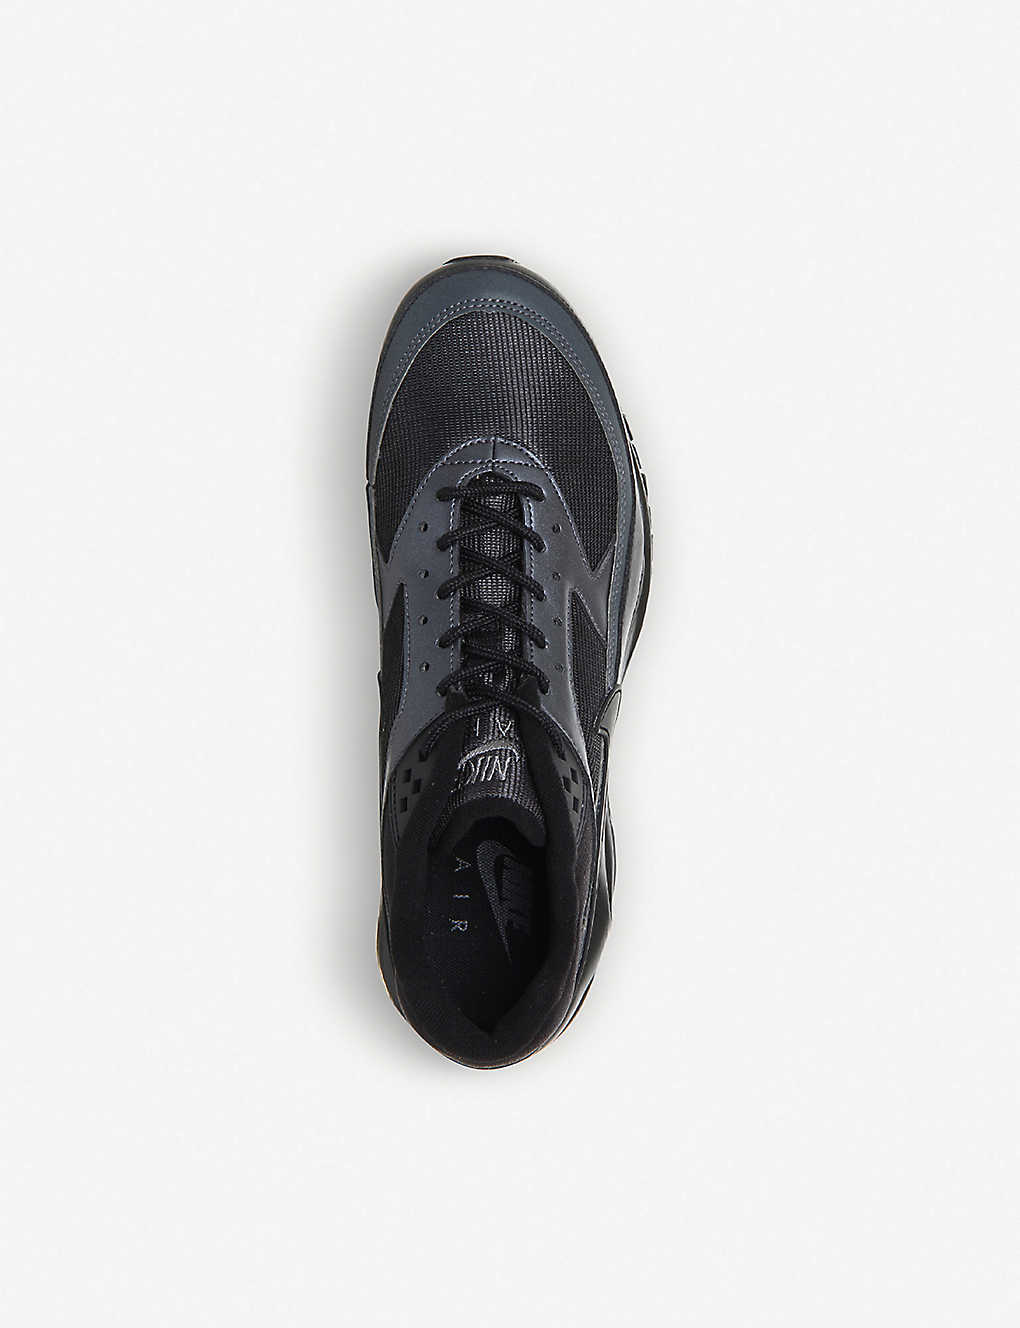 size 40 048bc 666c6 ... Air Max 97 BW iridescent leather trainers - Black metallic ...